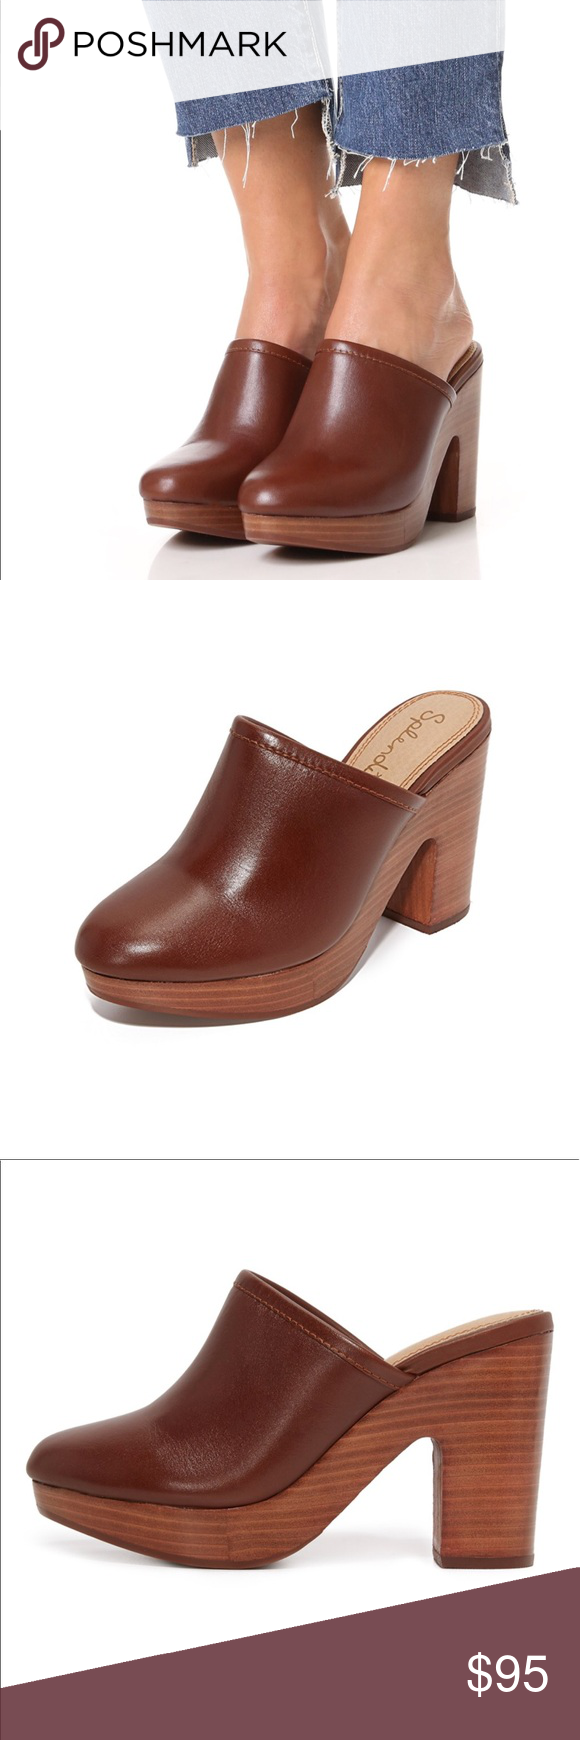 and comfort mules clogs remonte c dorndorf online buy cheap shoes comforter price women for s